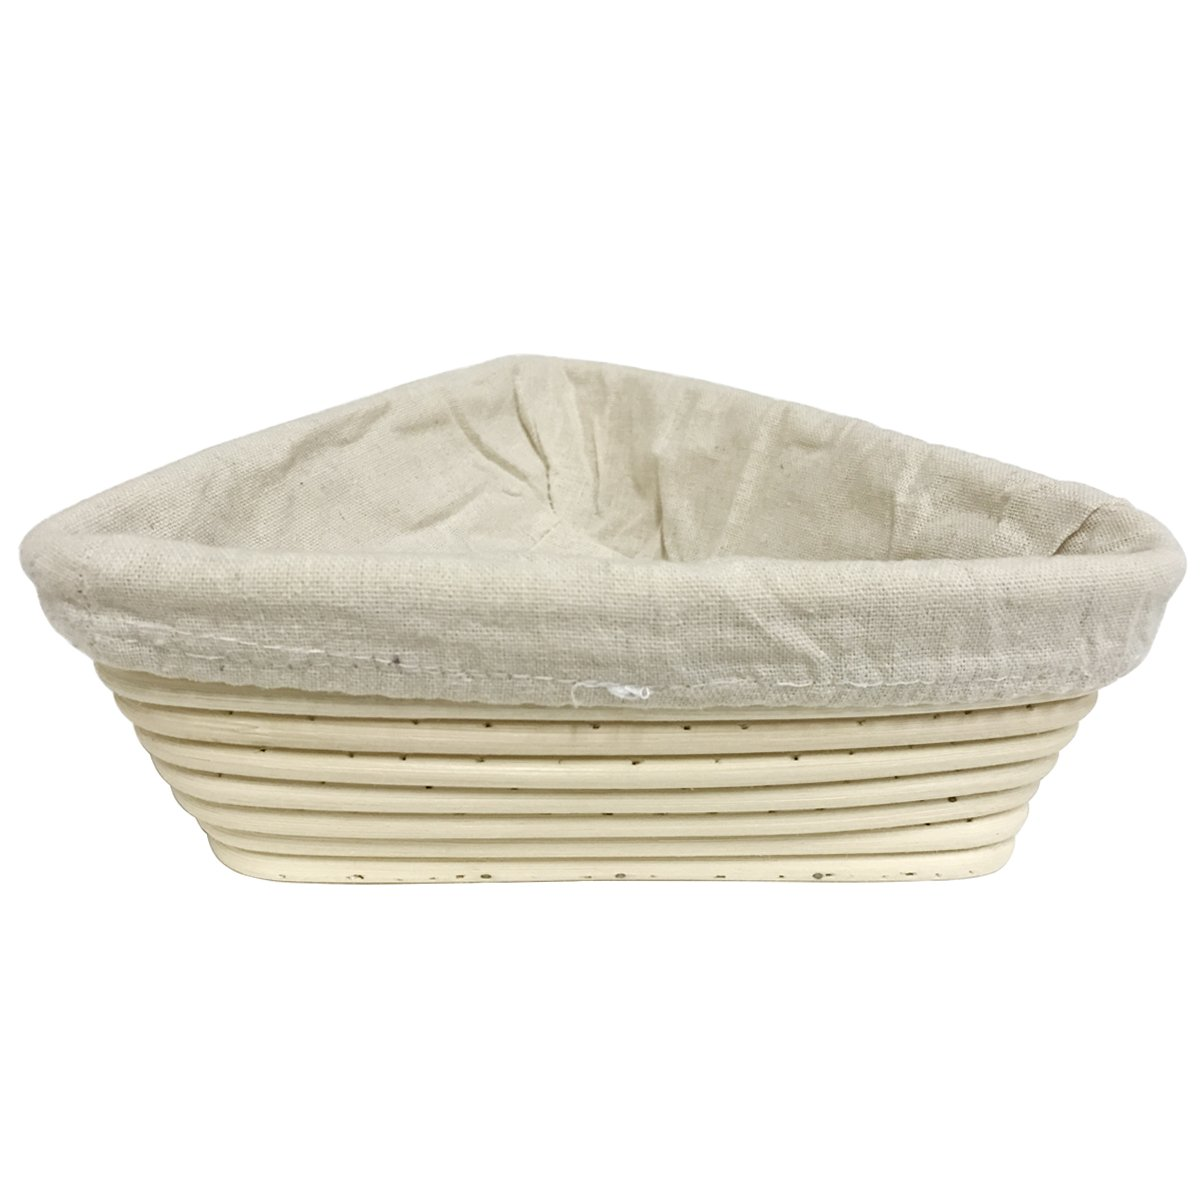 Agile-Shop 9 inch European Style Triangle Shaped Banneton Brotform Bread Dough Proofing Rising Rattan Basket with Linen Liner Cloth